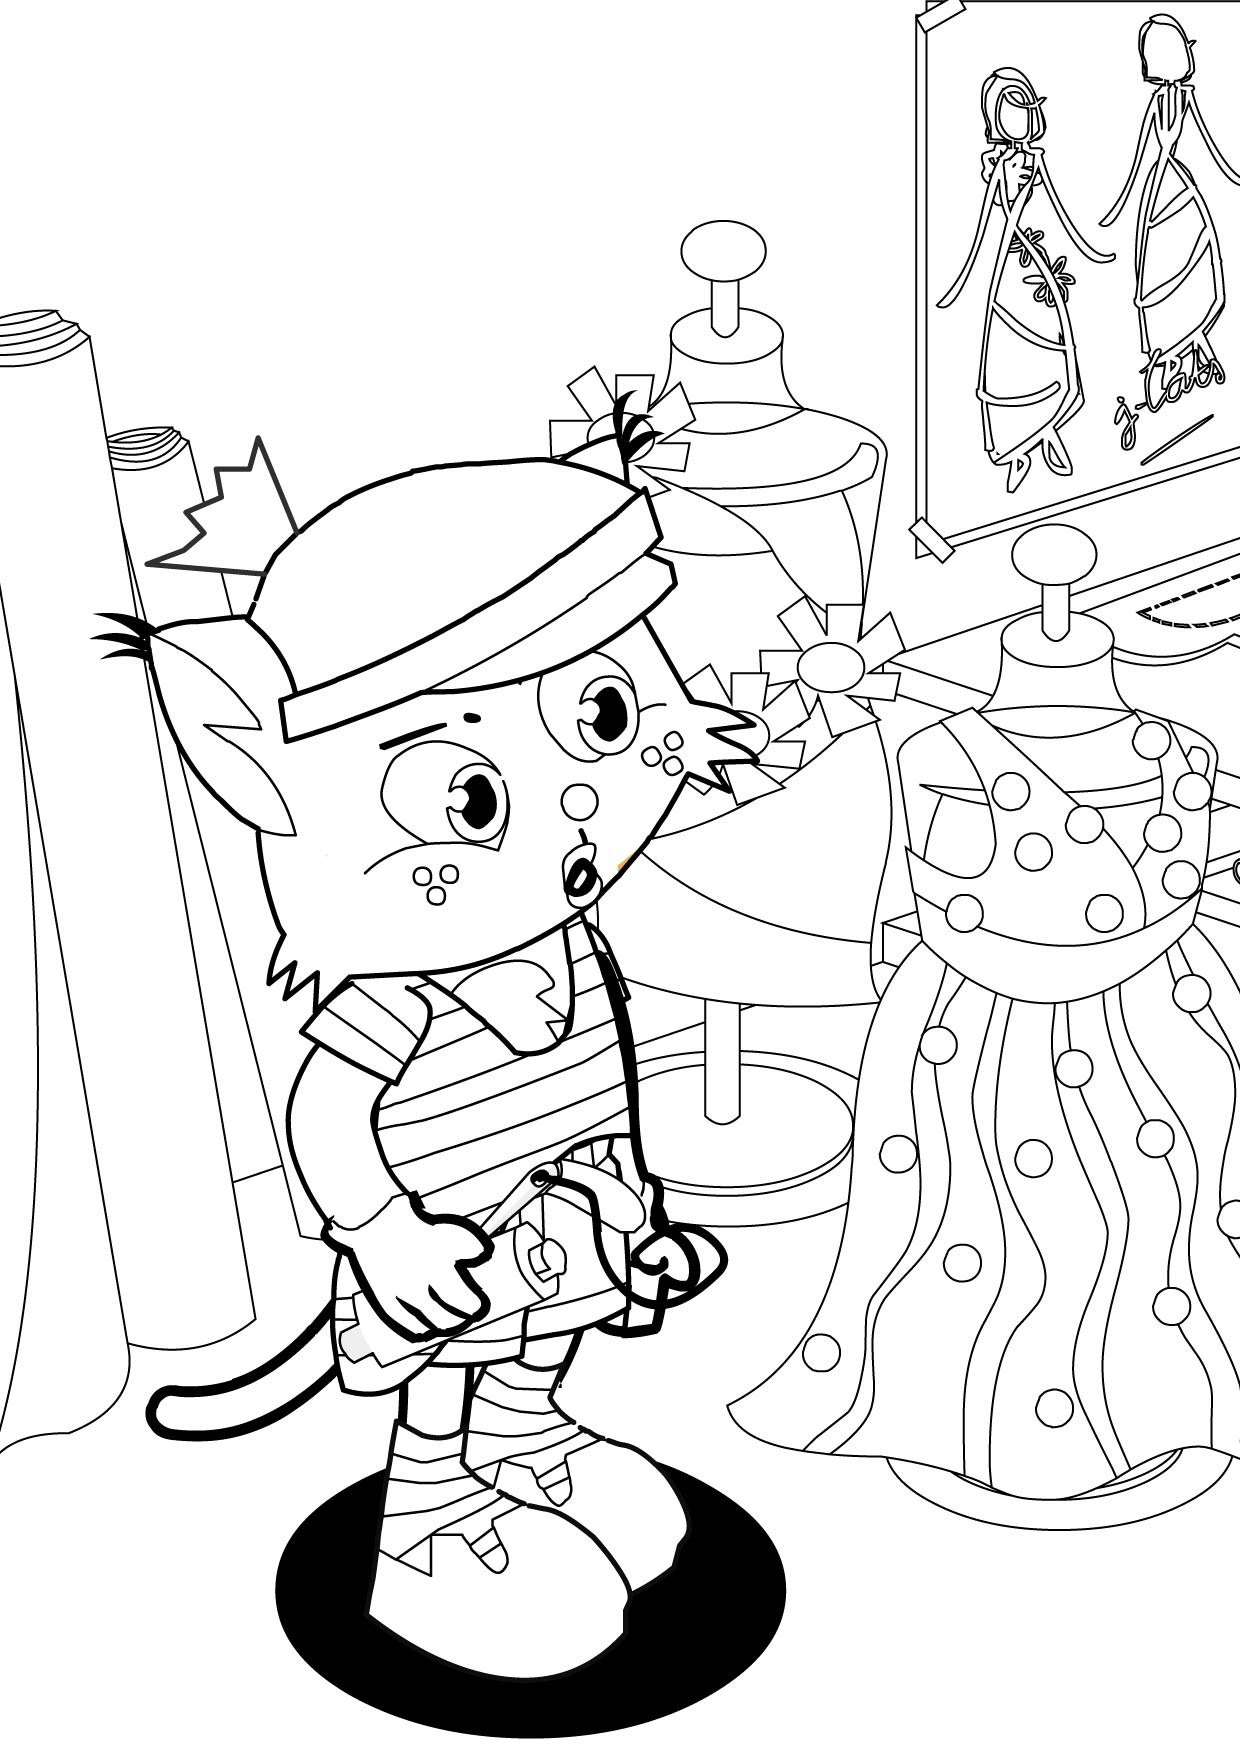 Fashion Designer Coloring Page Handipoints